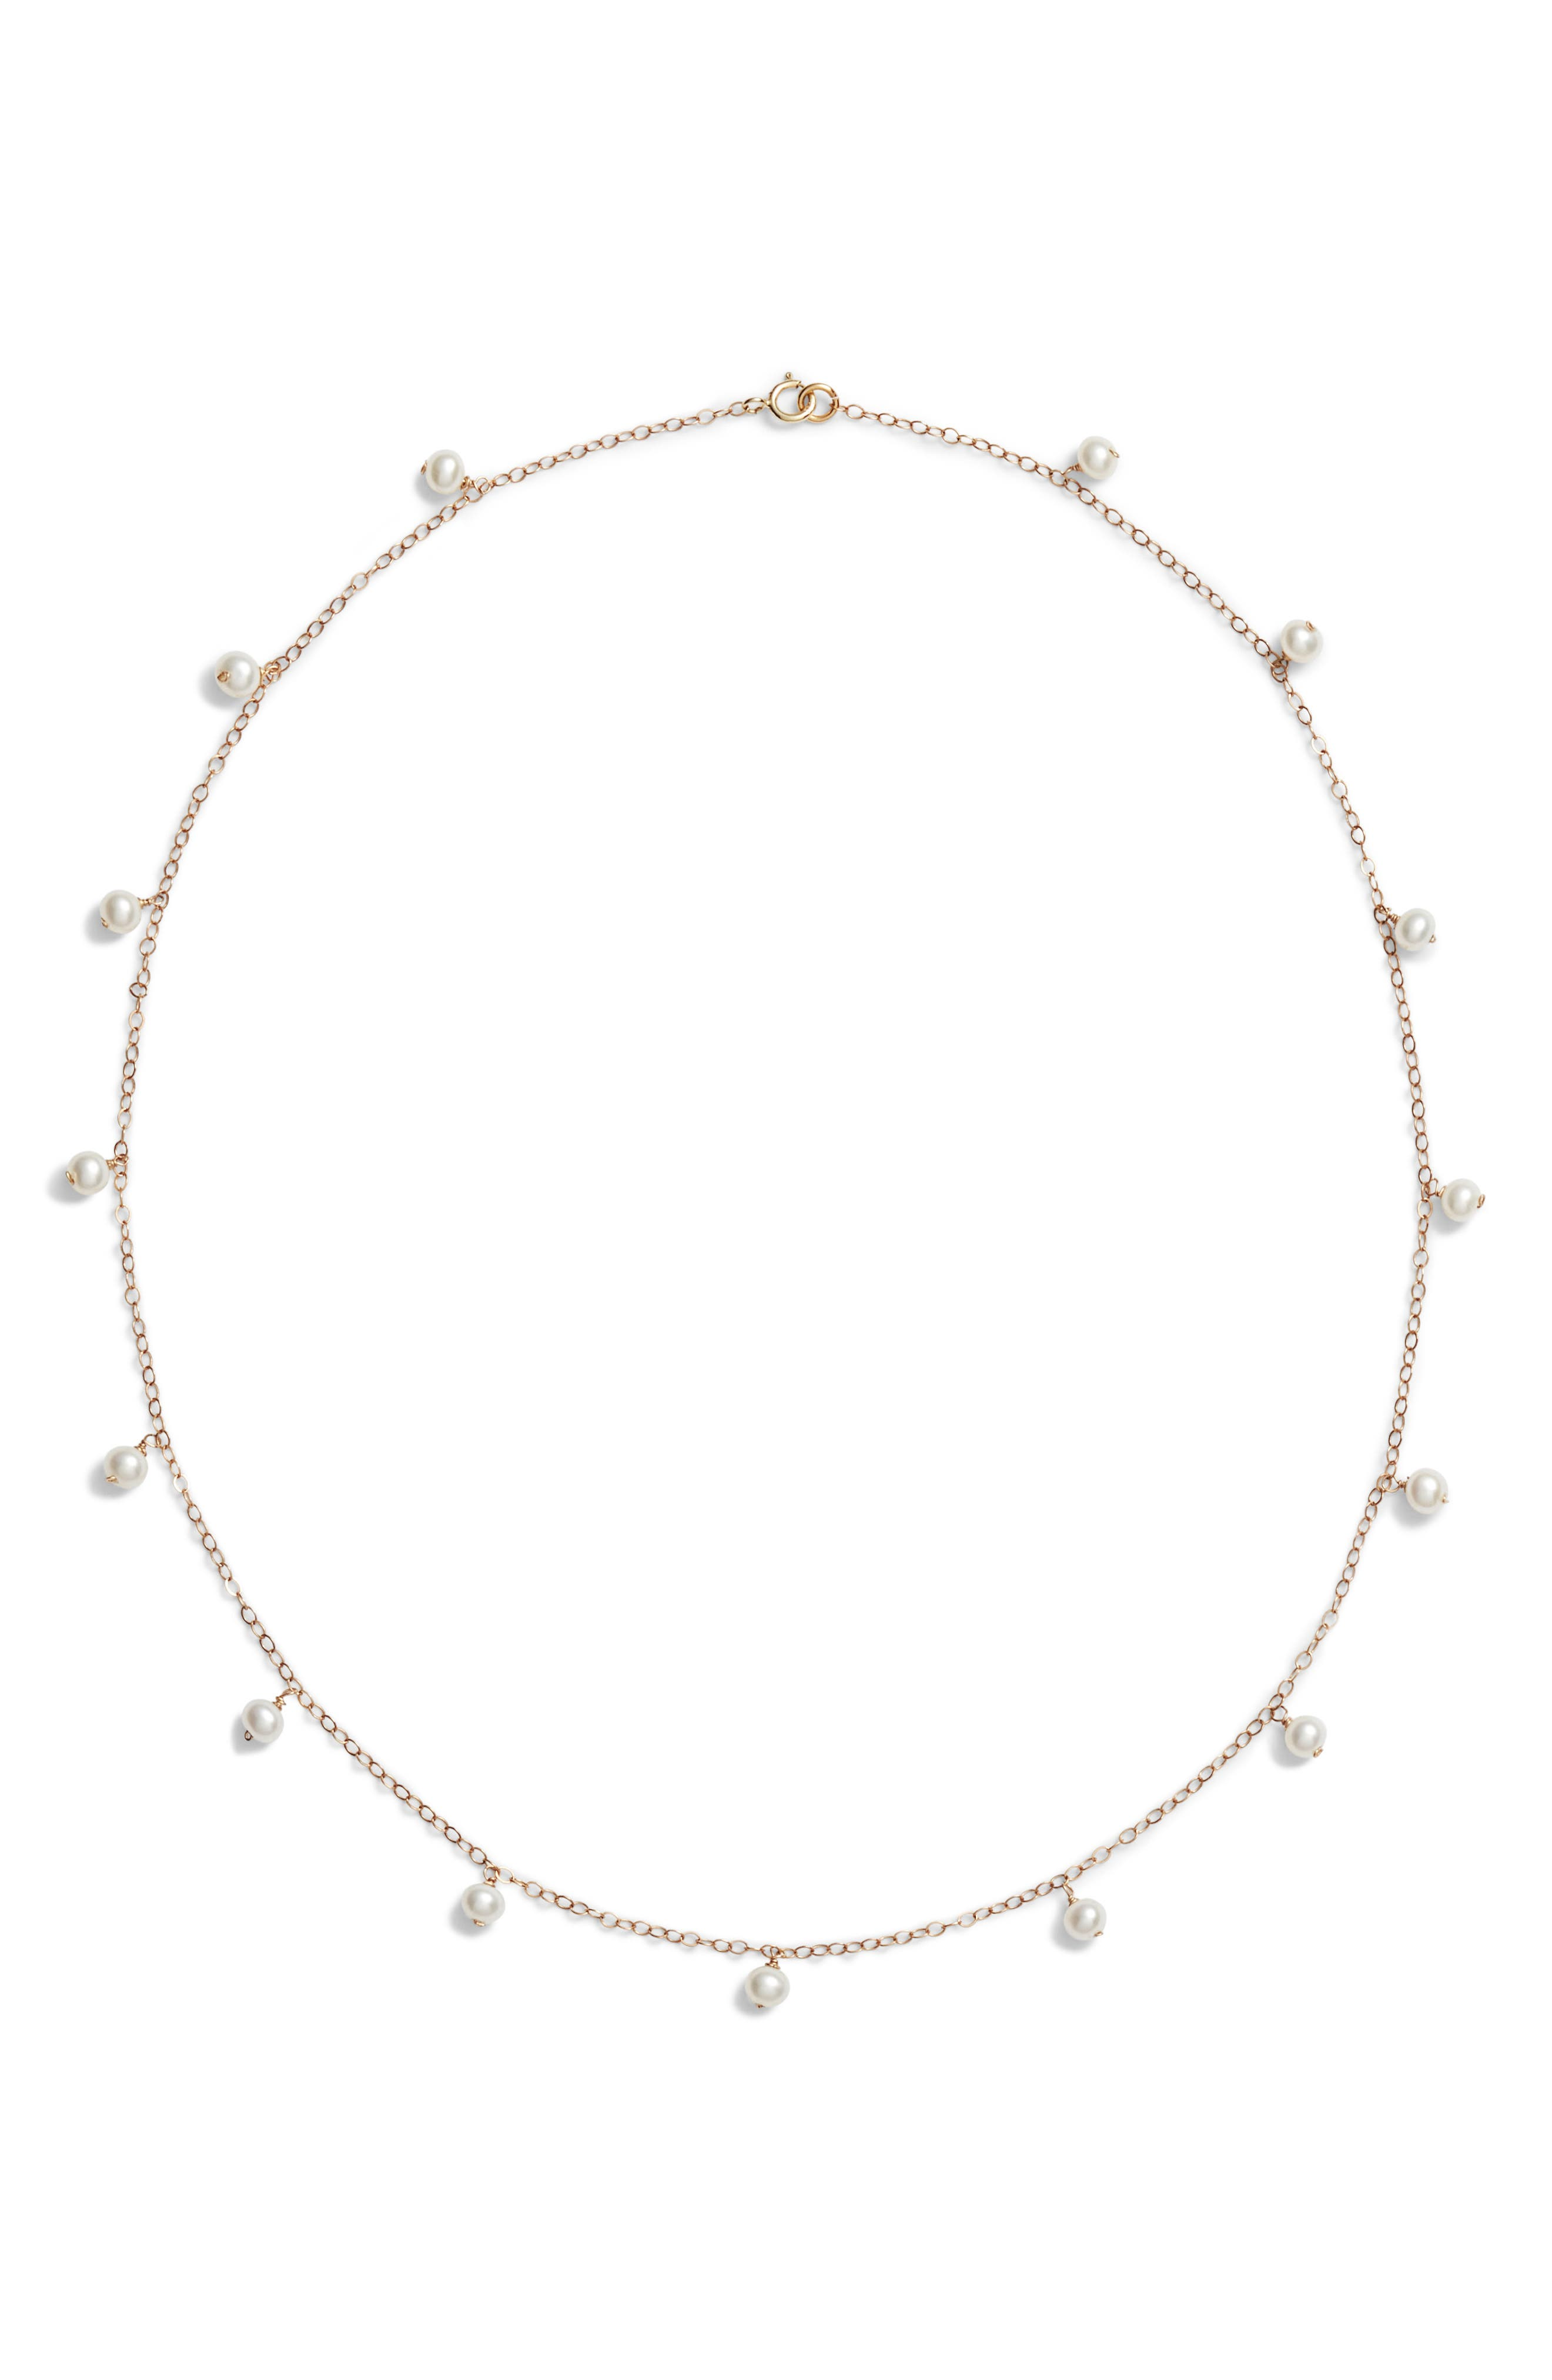 Baby Pearl Station Short Necklace,                             Main thumbnail 1, color,                             Yellow Gold/ White Pearl